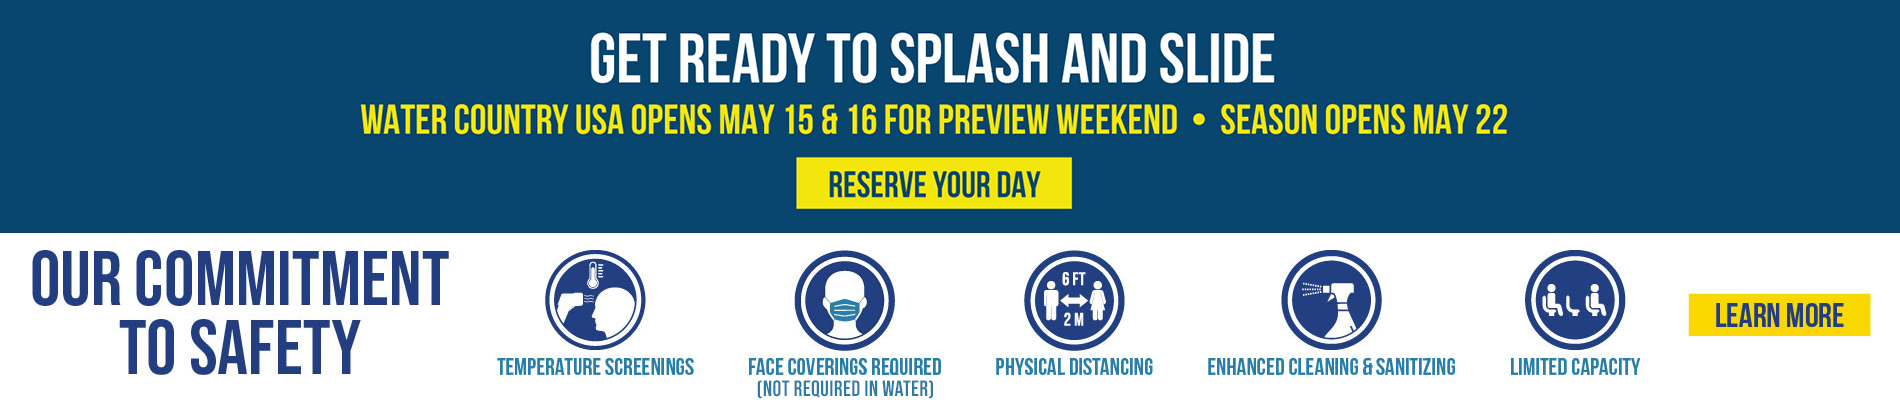 Get Ready to Splash & Slide! Water Country USA Opens May 15 & 16 for Preview Weekend.